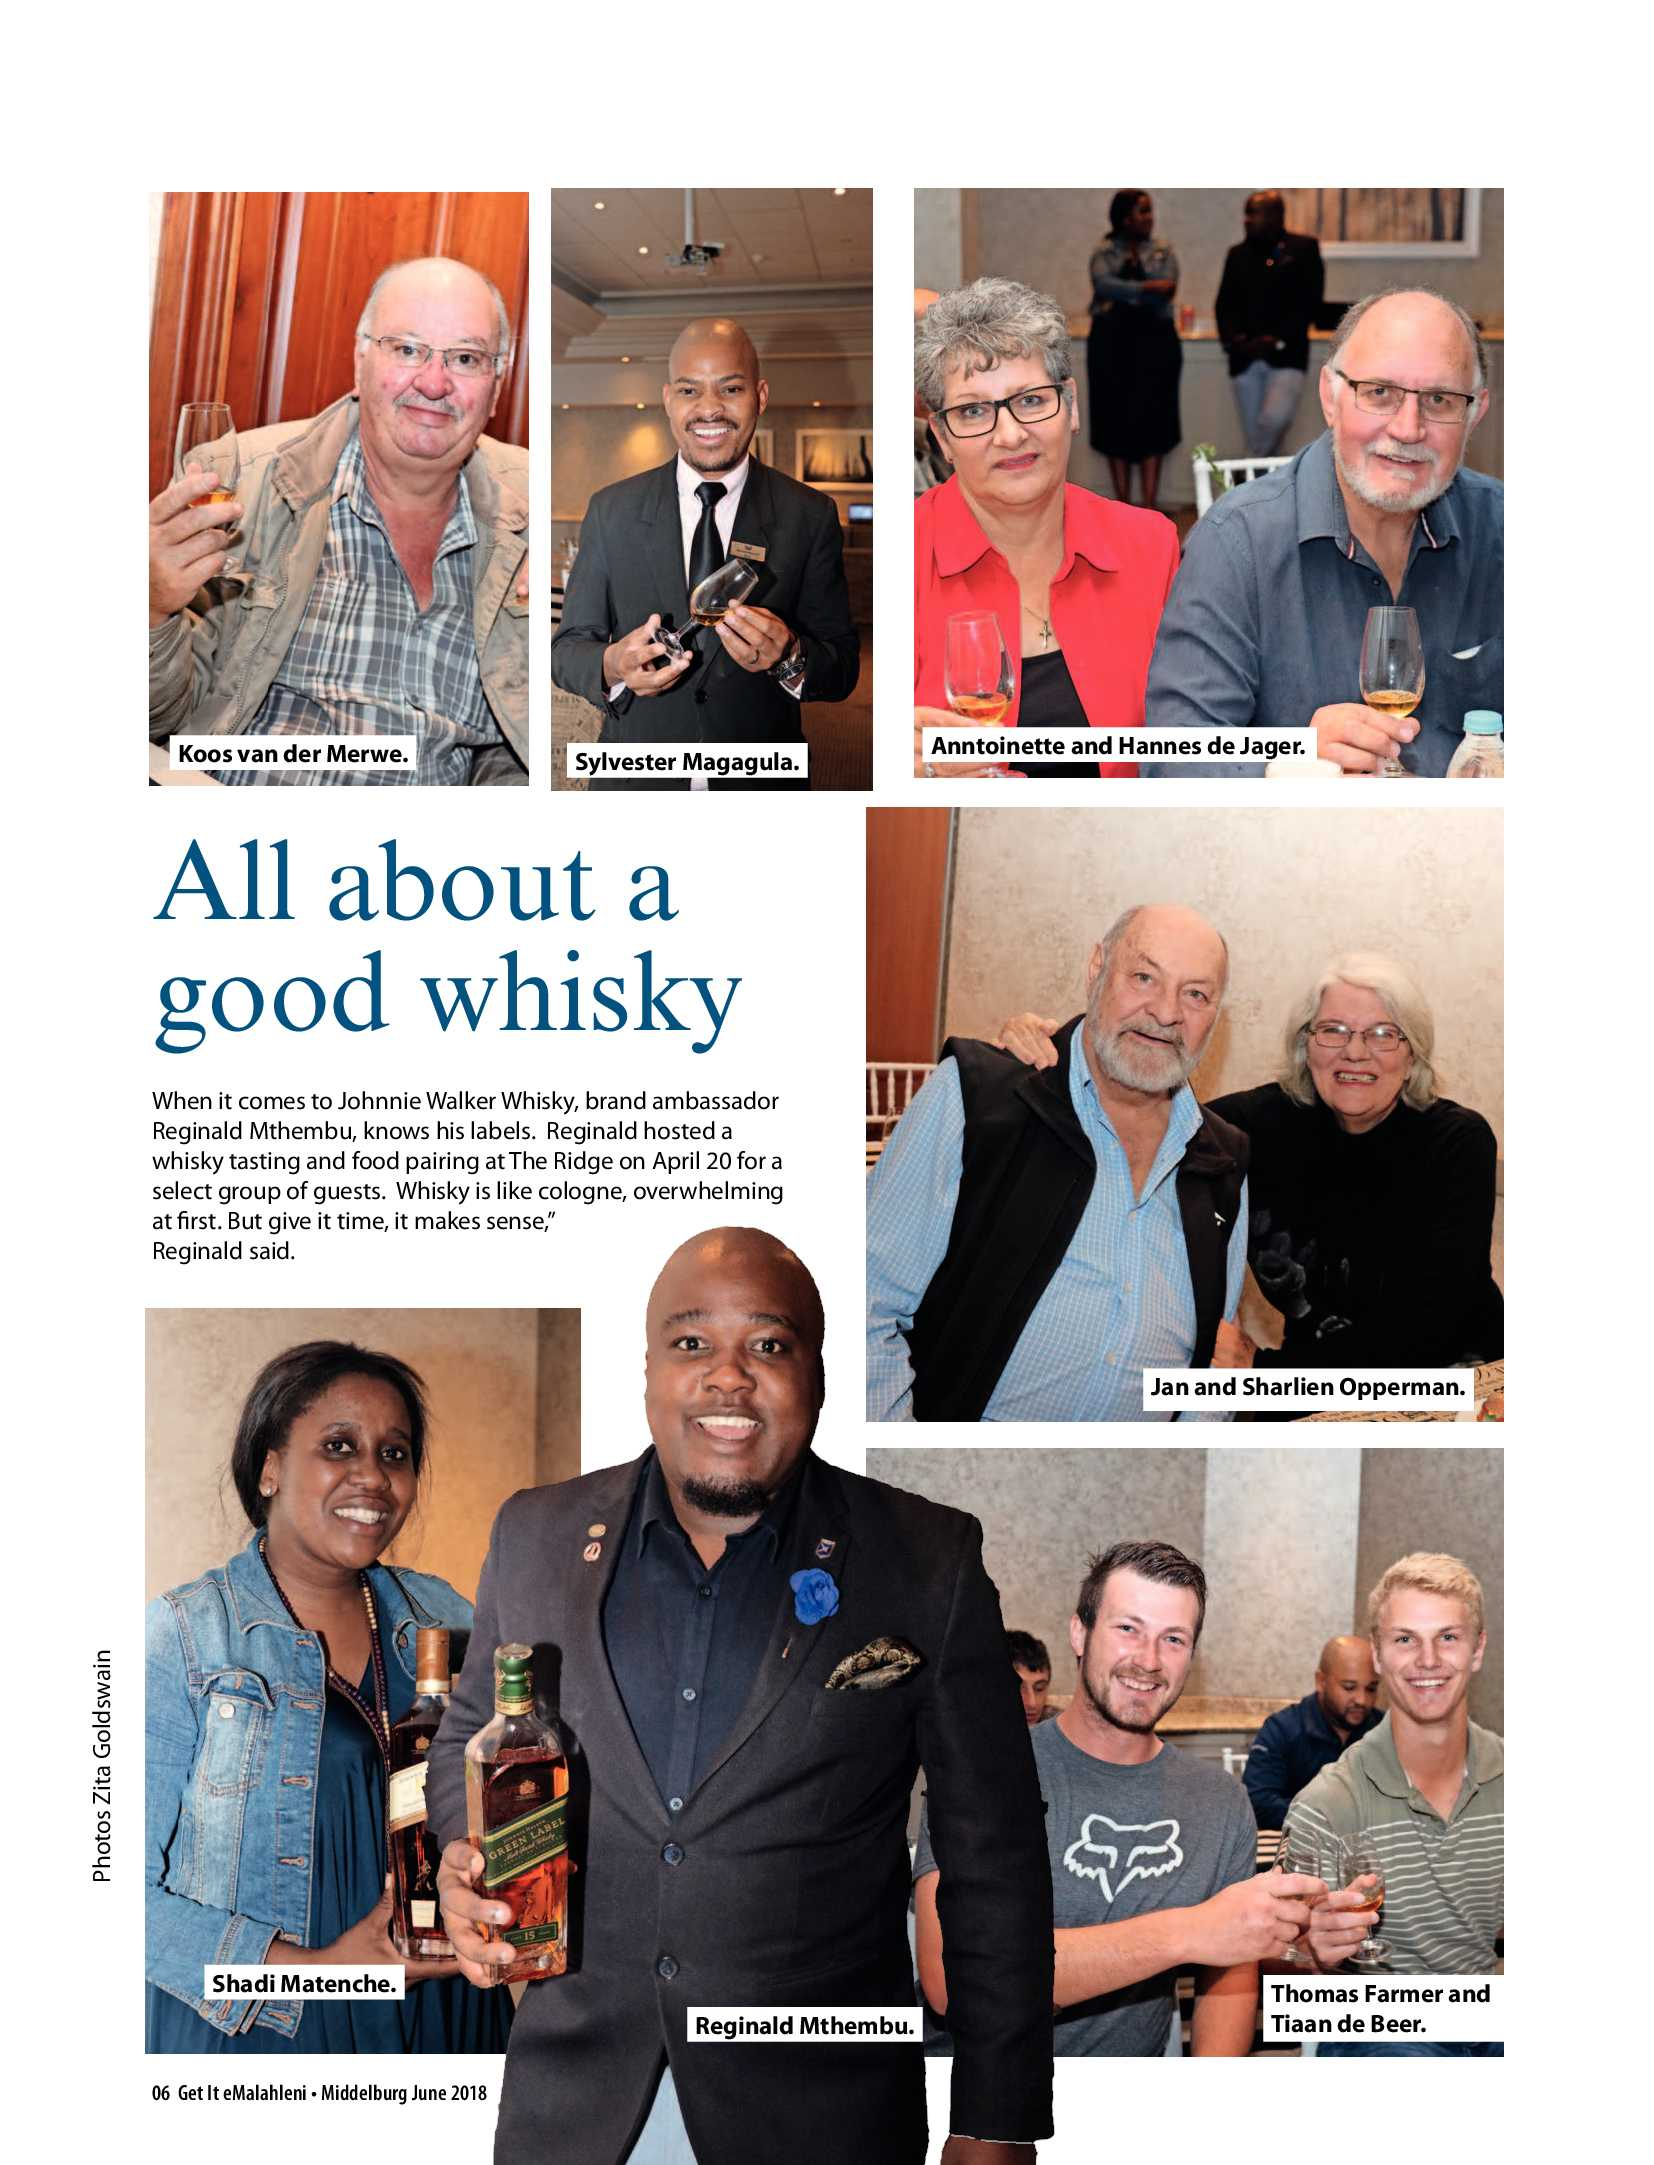 get-middelburg-june-2018-epapers-page-8